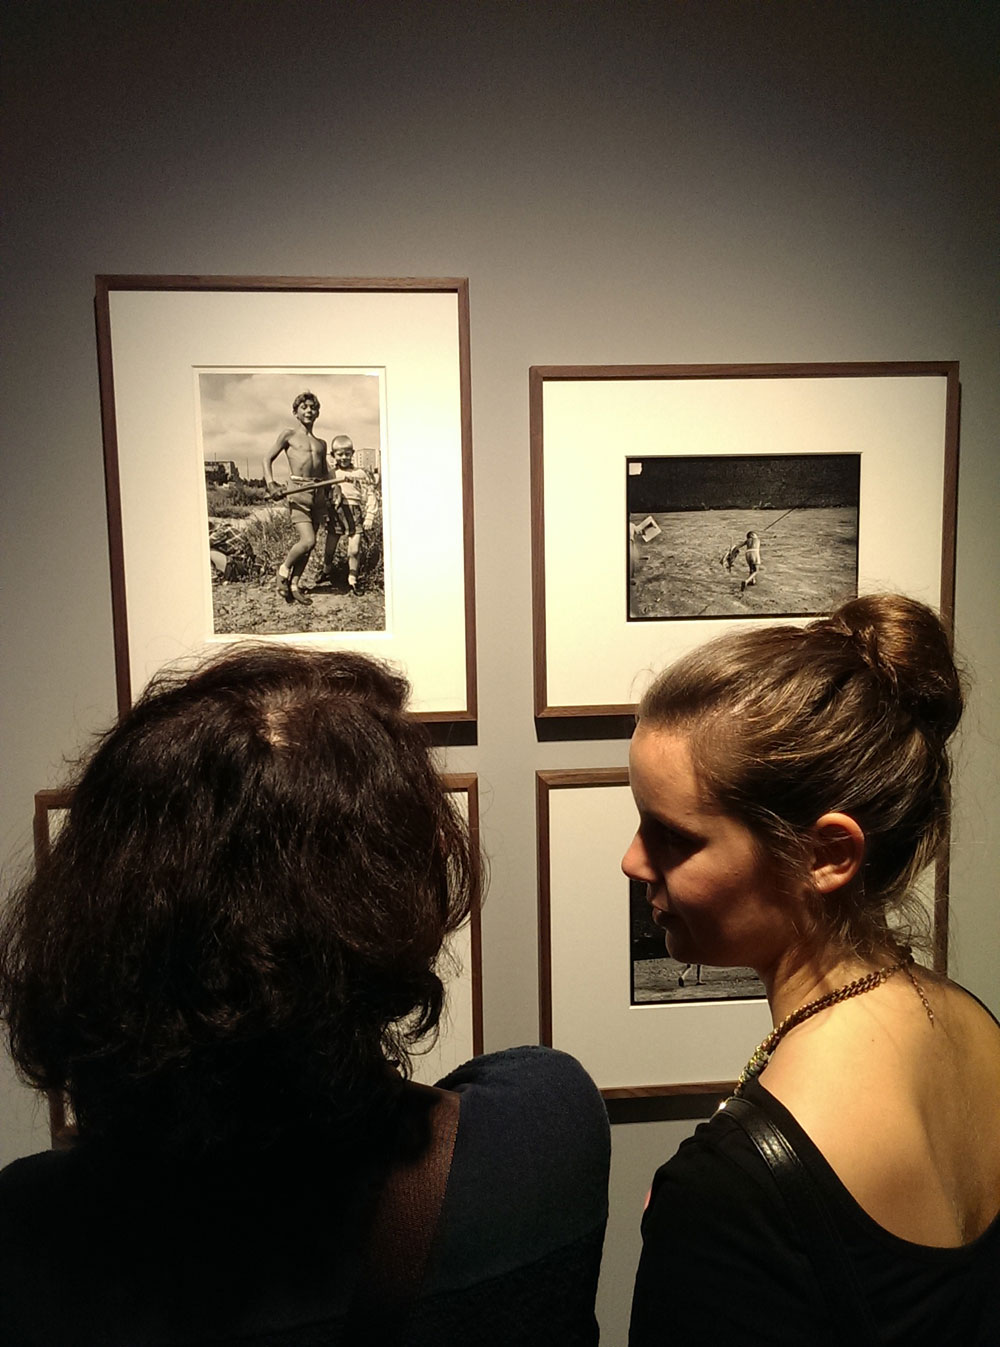 """Vernissage visitors looking at """"Jungen beim Spielen in Charlottenburg"""" (Boys playing in Charlottenburg) from 1957 (top left) at the Will McBride exhibition."""